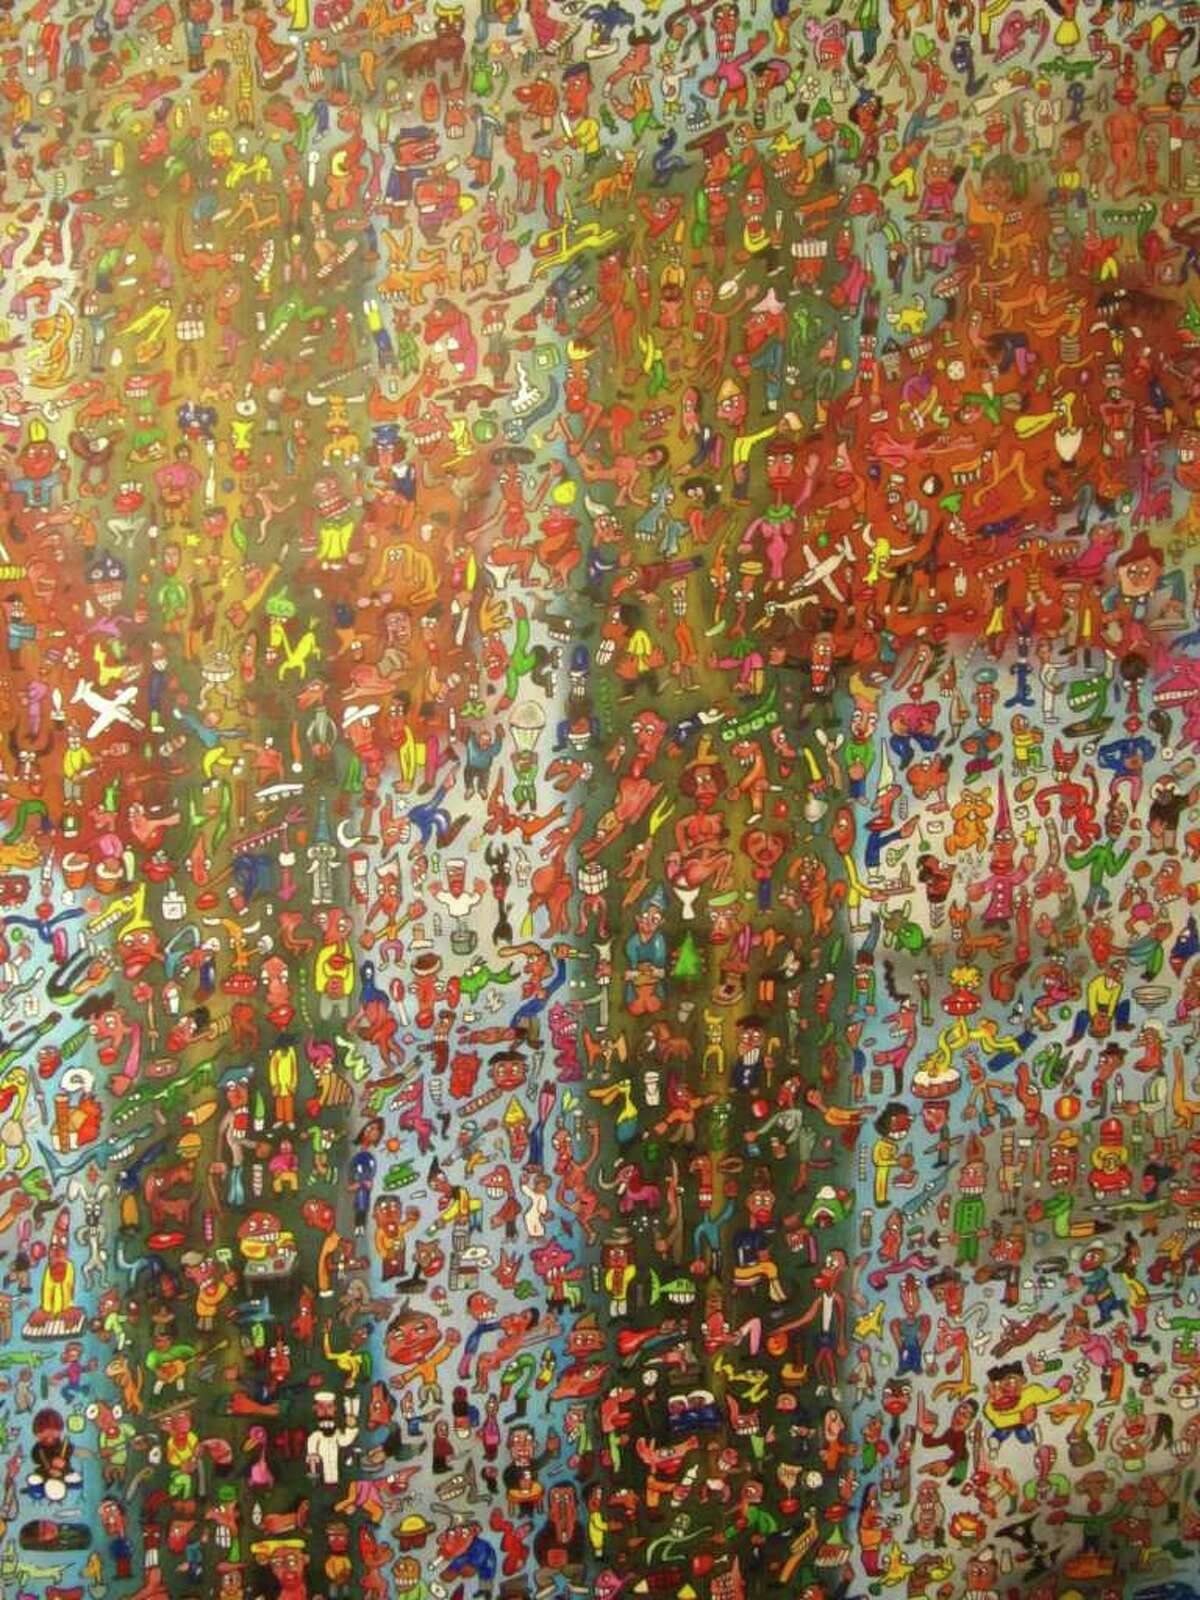 Philippe Simille Explosition 2001 acrylic on linen 144x96cm (courtesy The Marketplace Gallery)